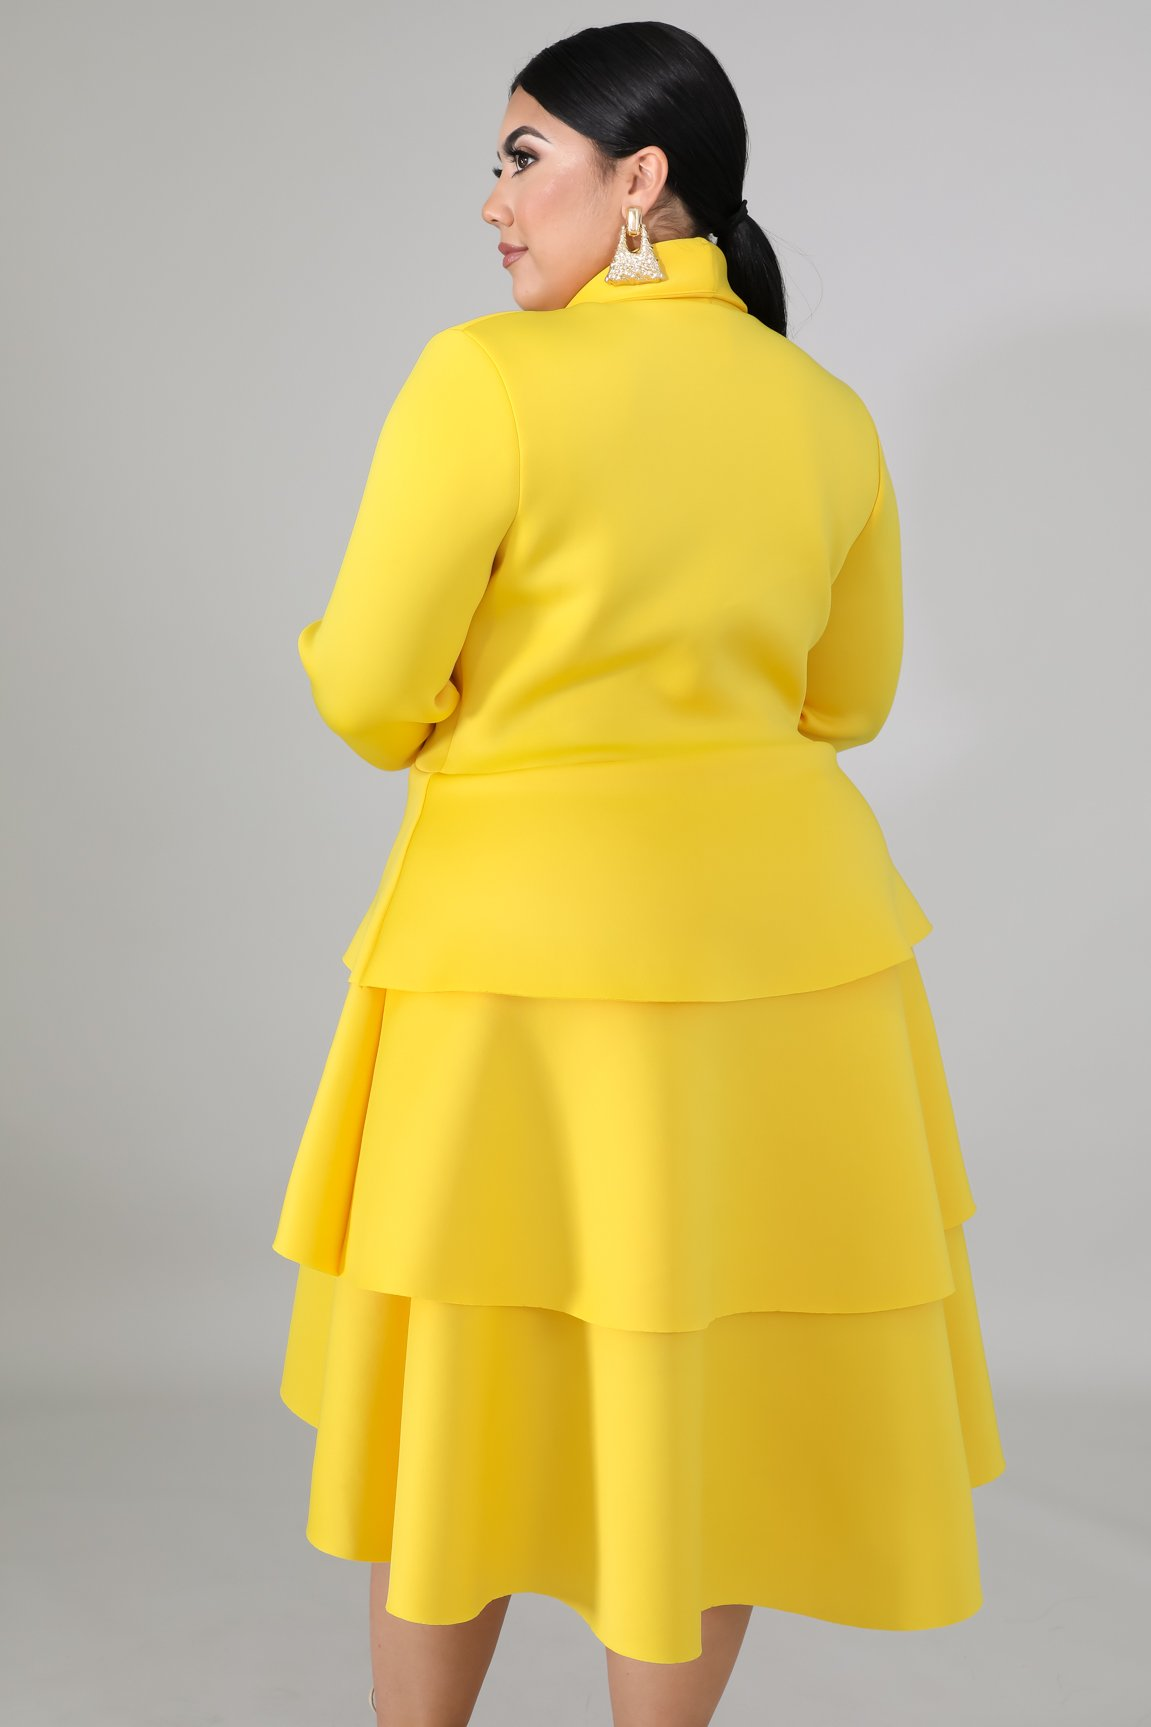 Dress - Tulips (Yellow)